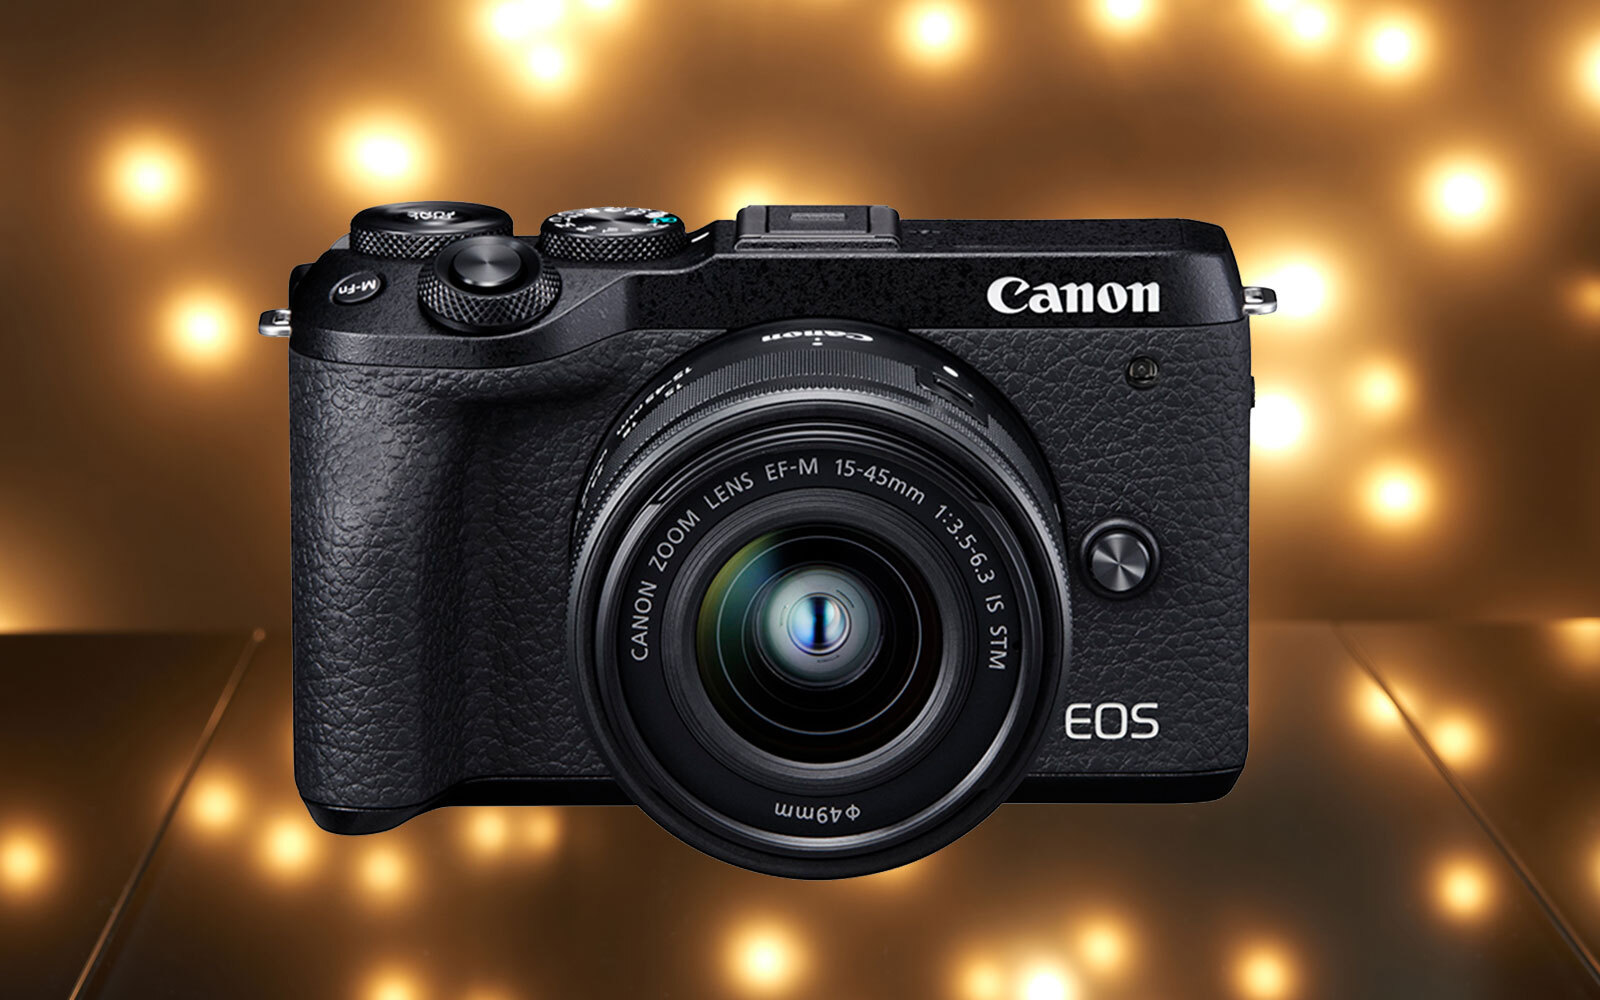 The best cameras, accessories and bags to give as gifts